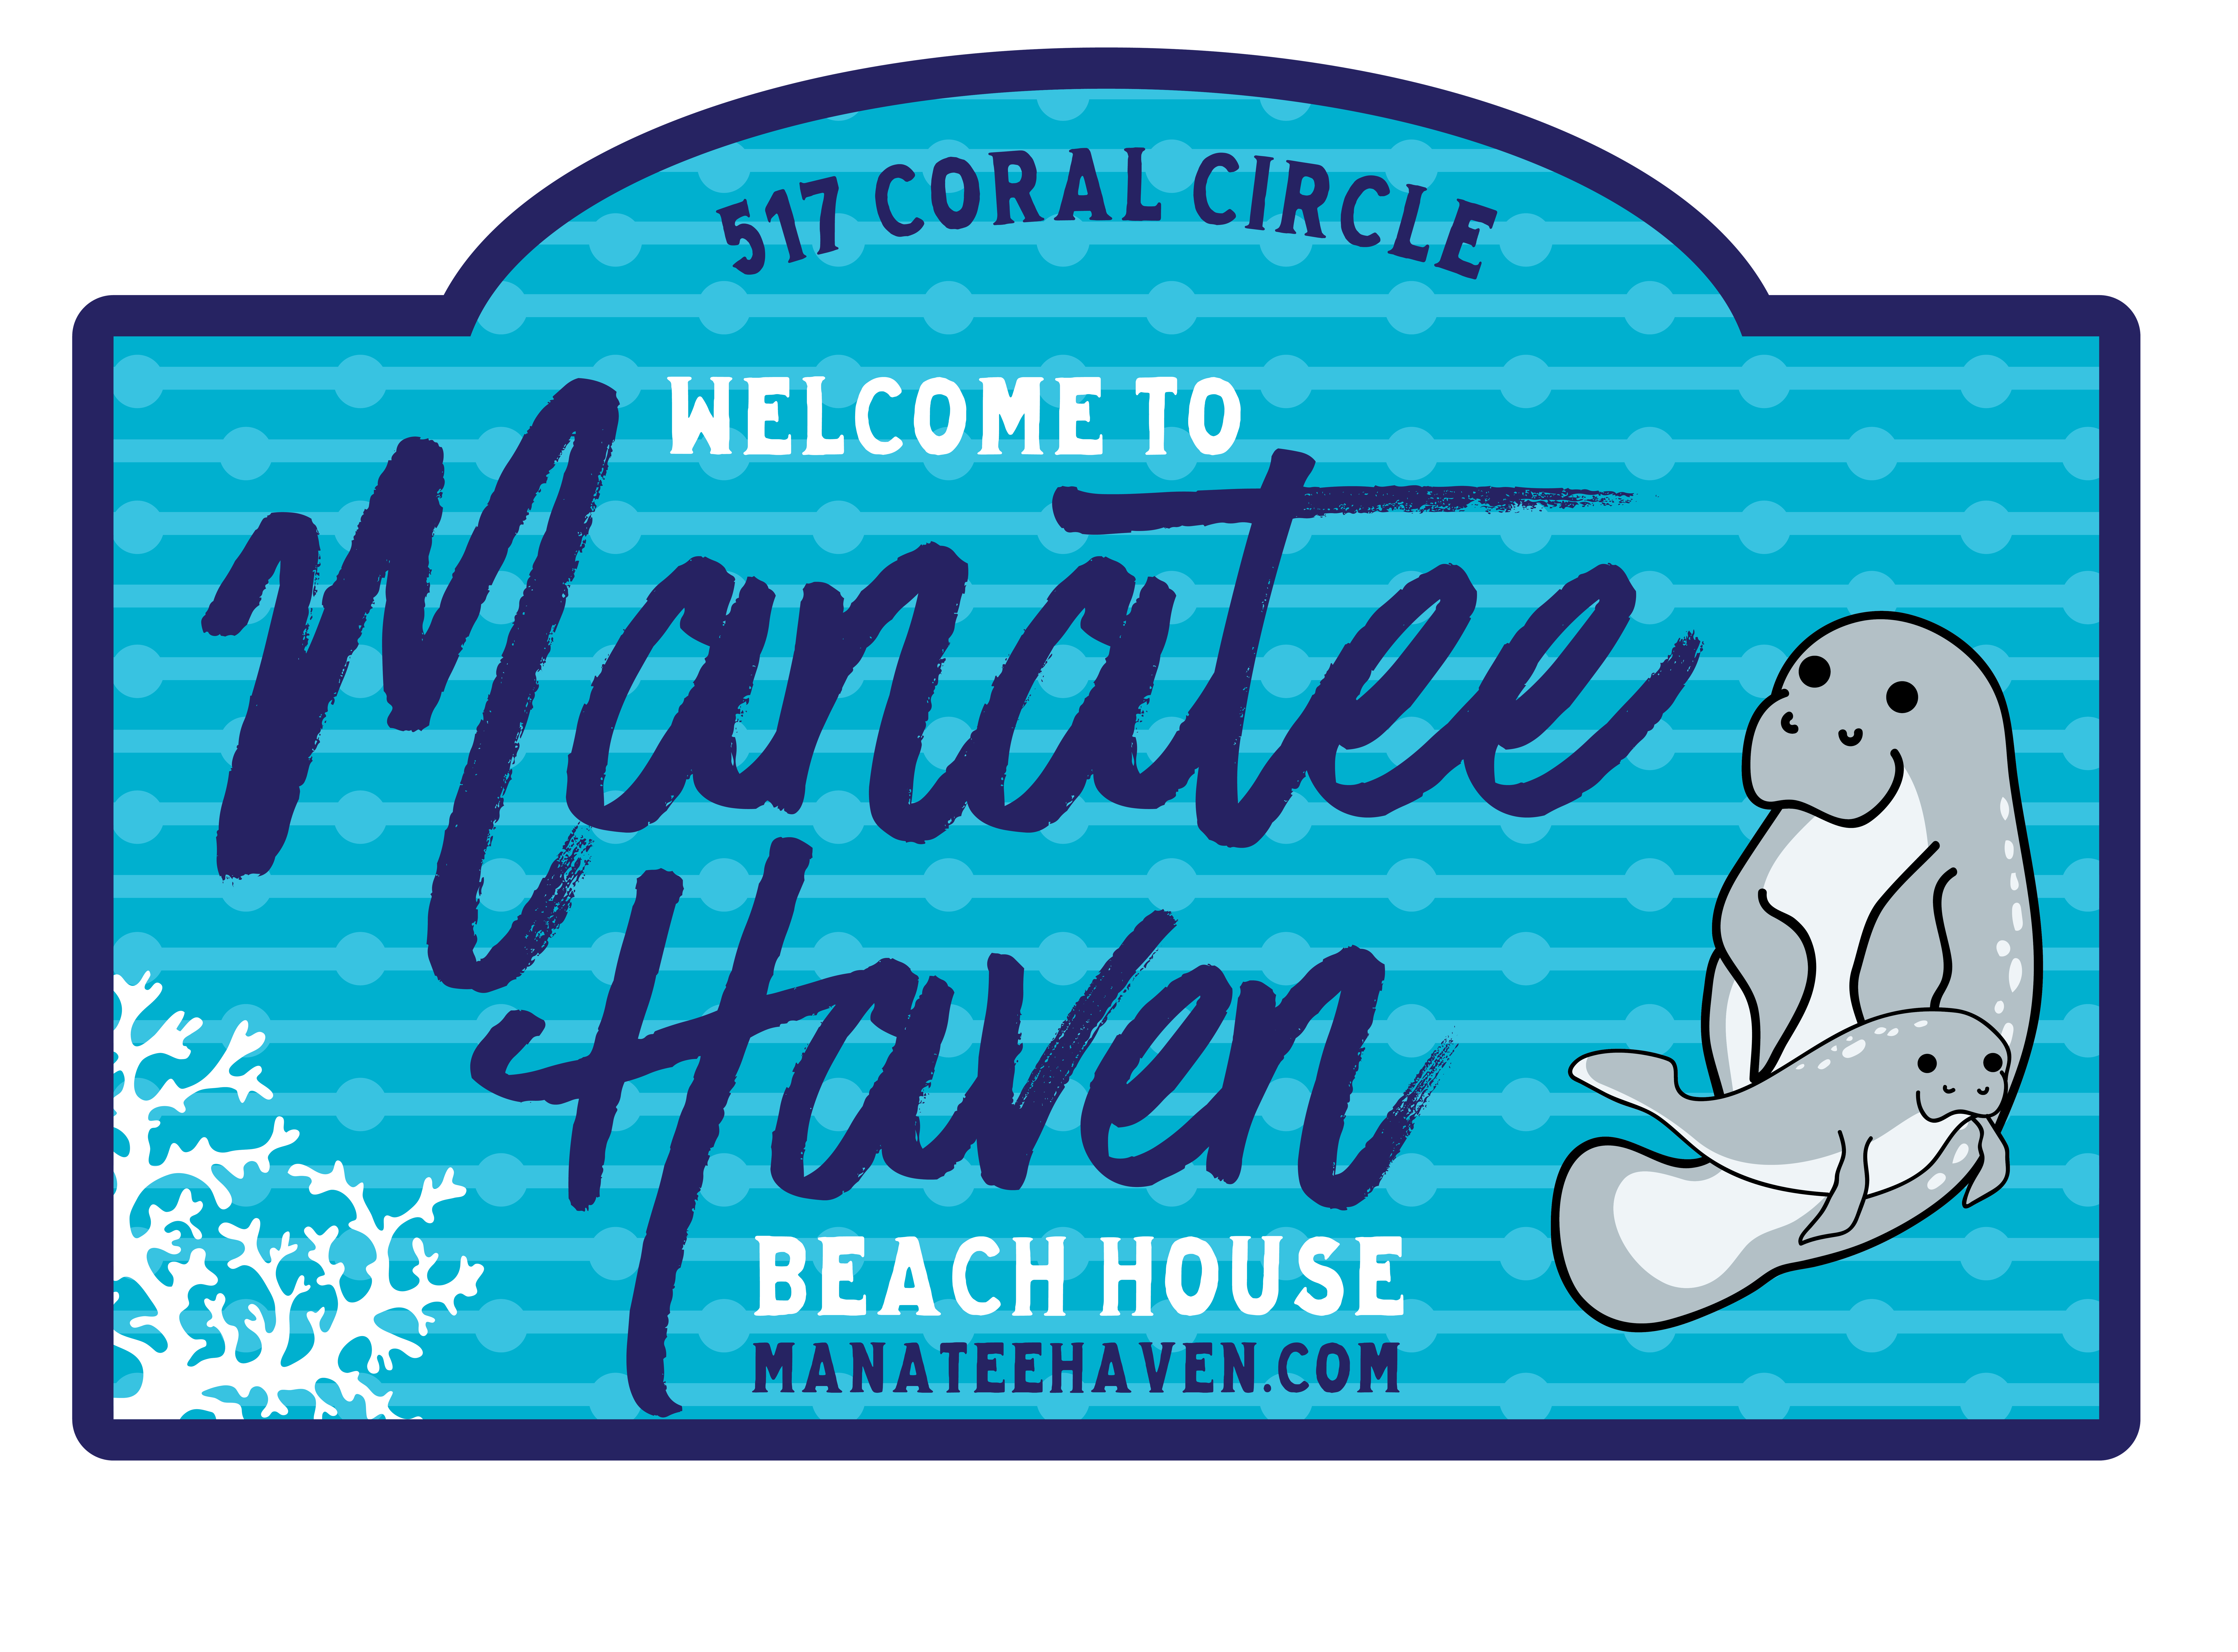 manatee-haven-beach-house